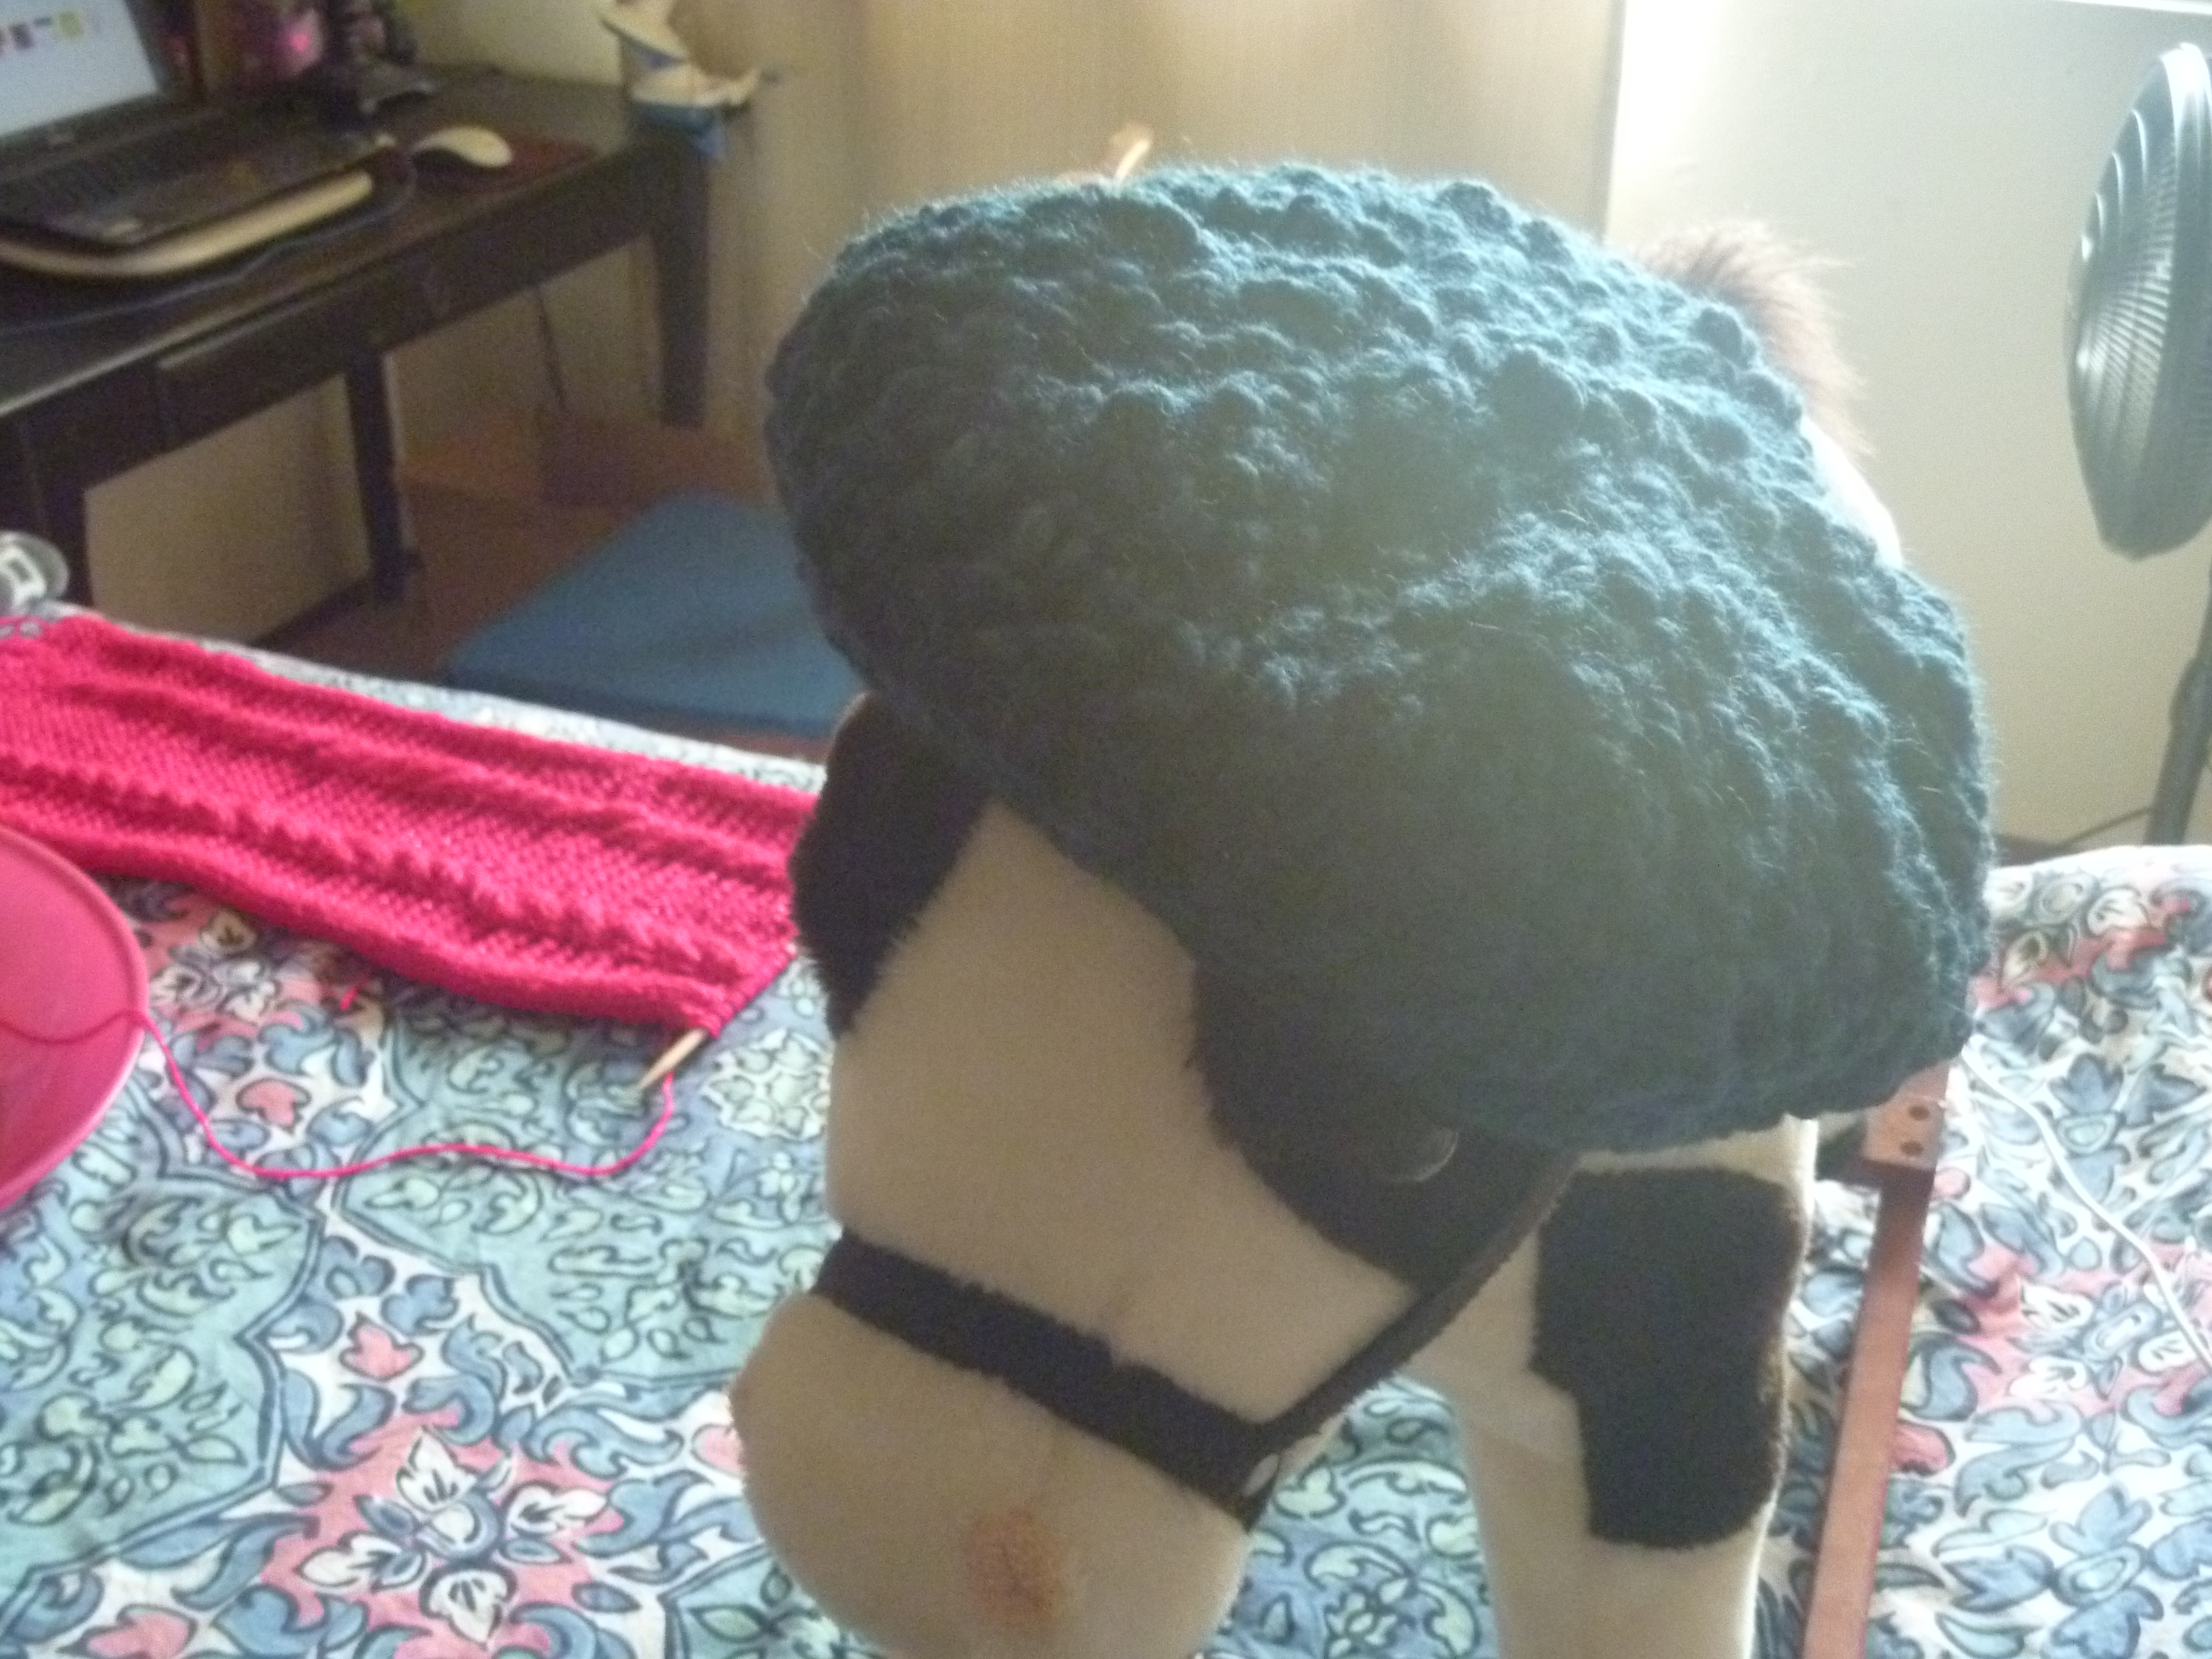 semi-blurry picture of a rocking horse wearing a beanie or beret, with a view of the scarf nearby